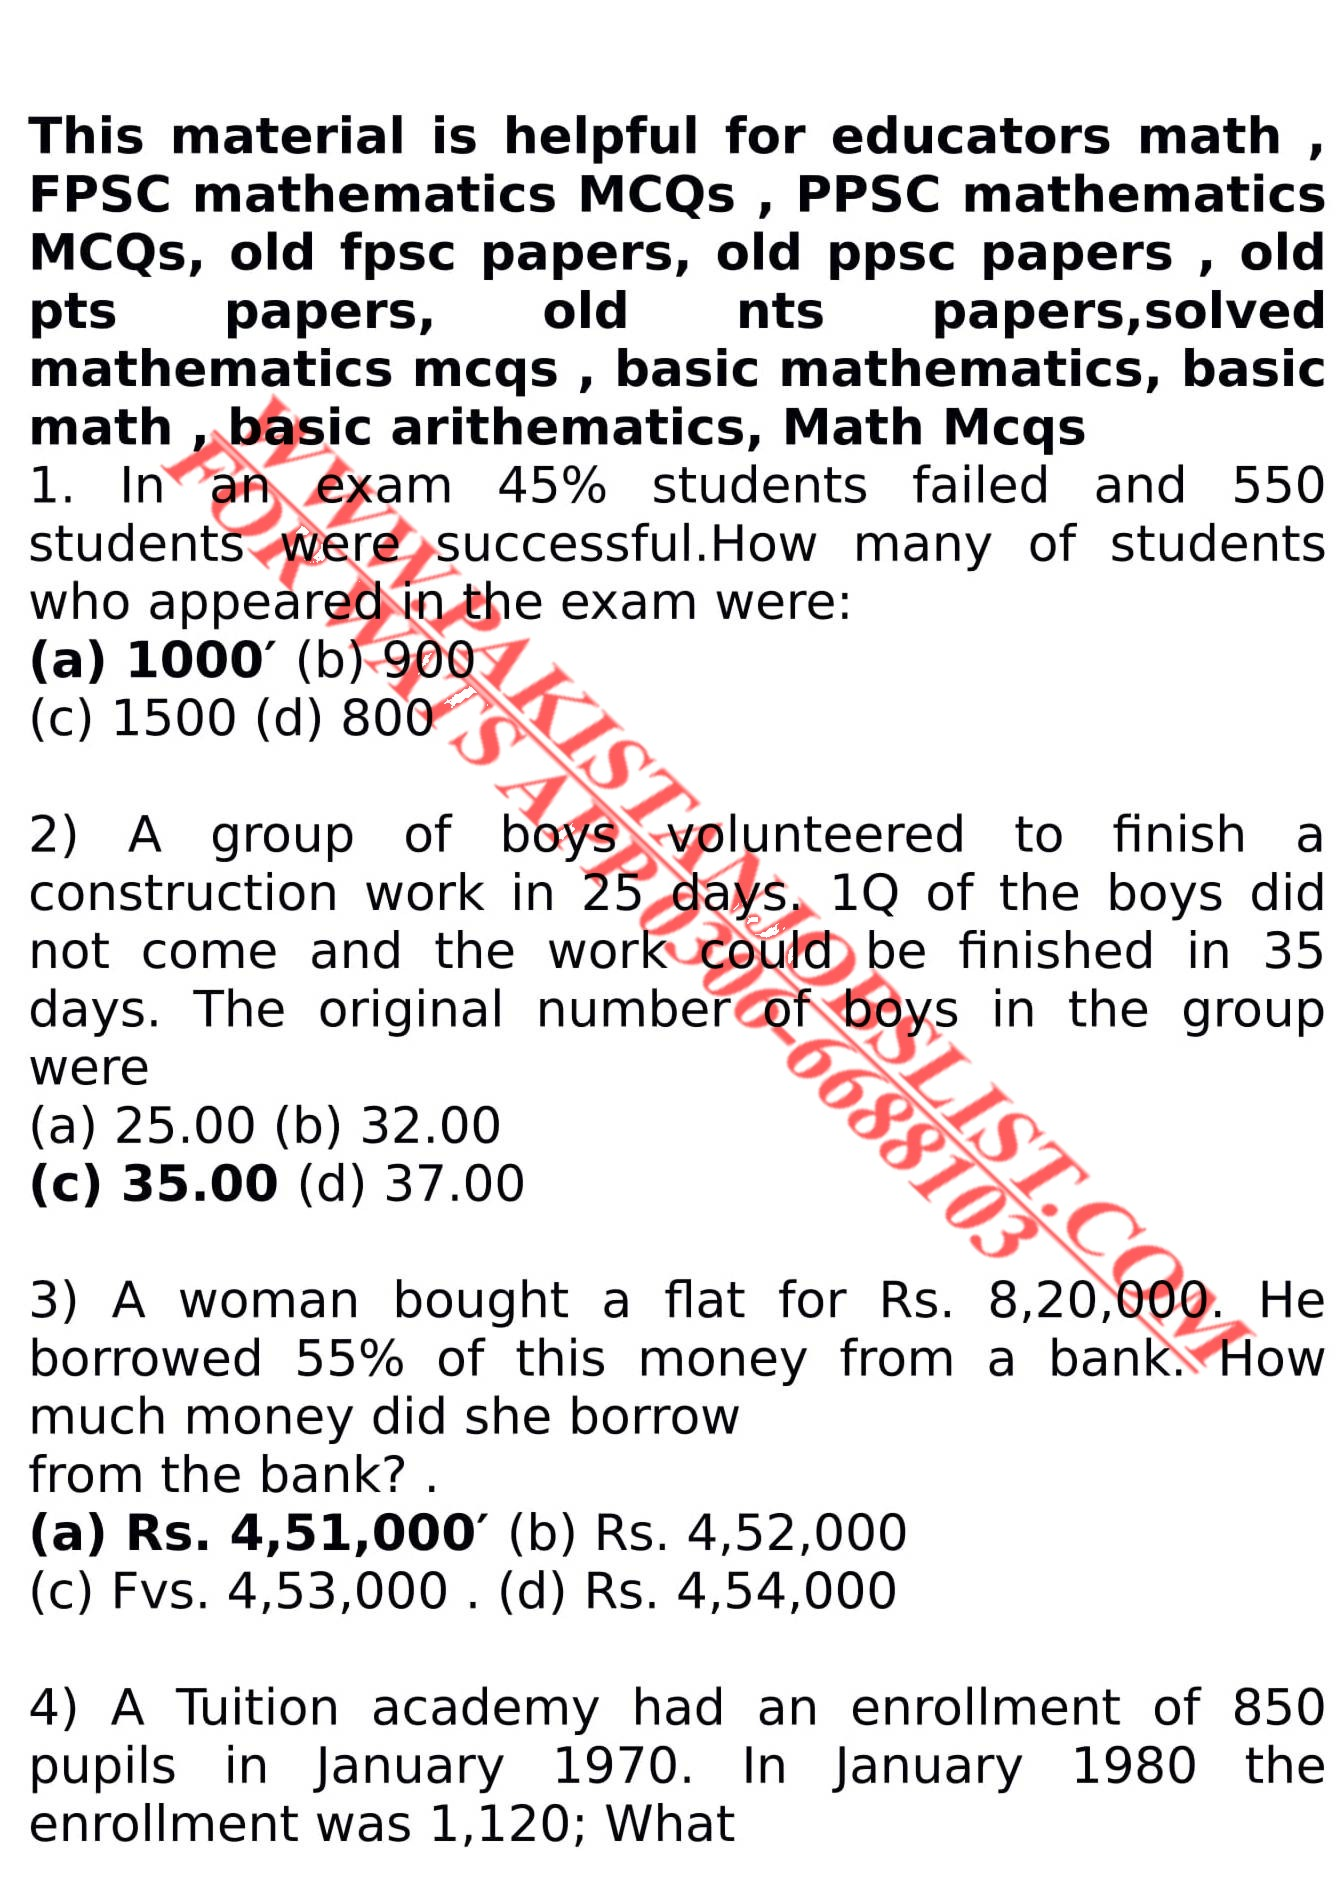 Mathematics Mcqs For Nts - Tips and Tricks About Mathematic